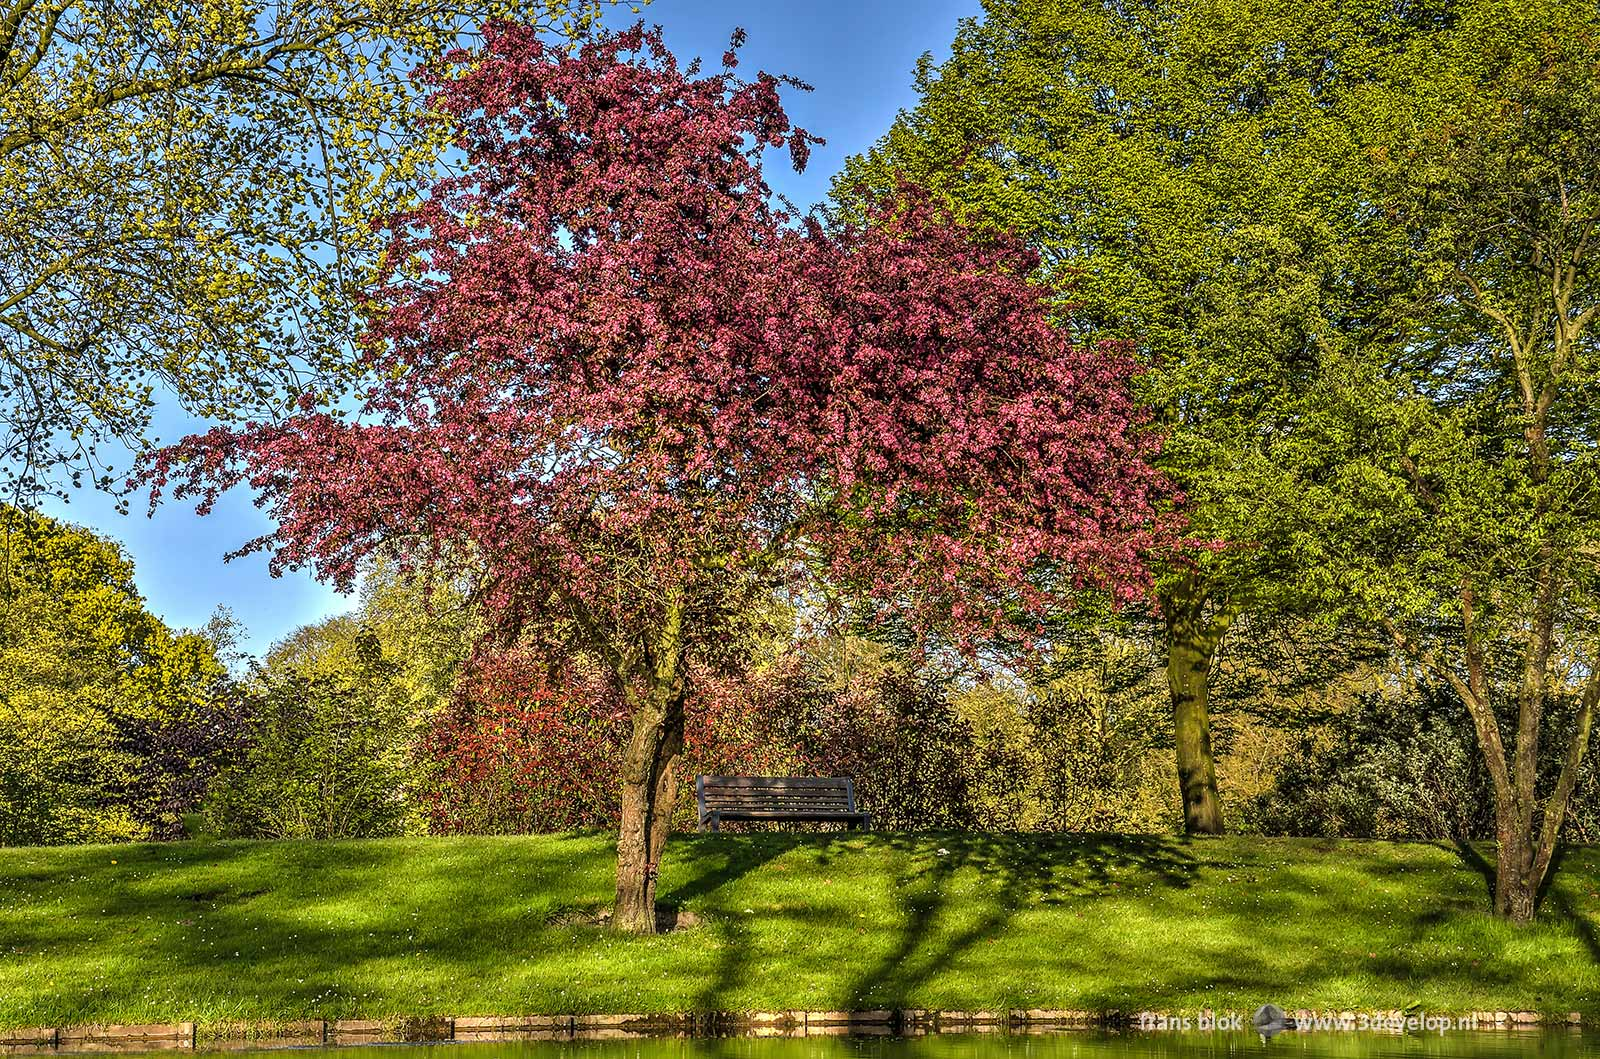 A purple red flowering cherry tree at the edge of a pond in The Park in Rotterdam